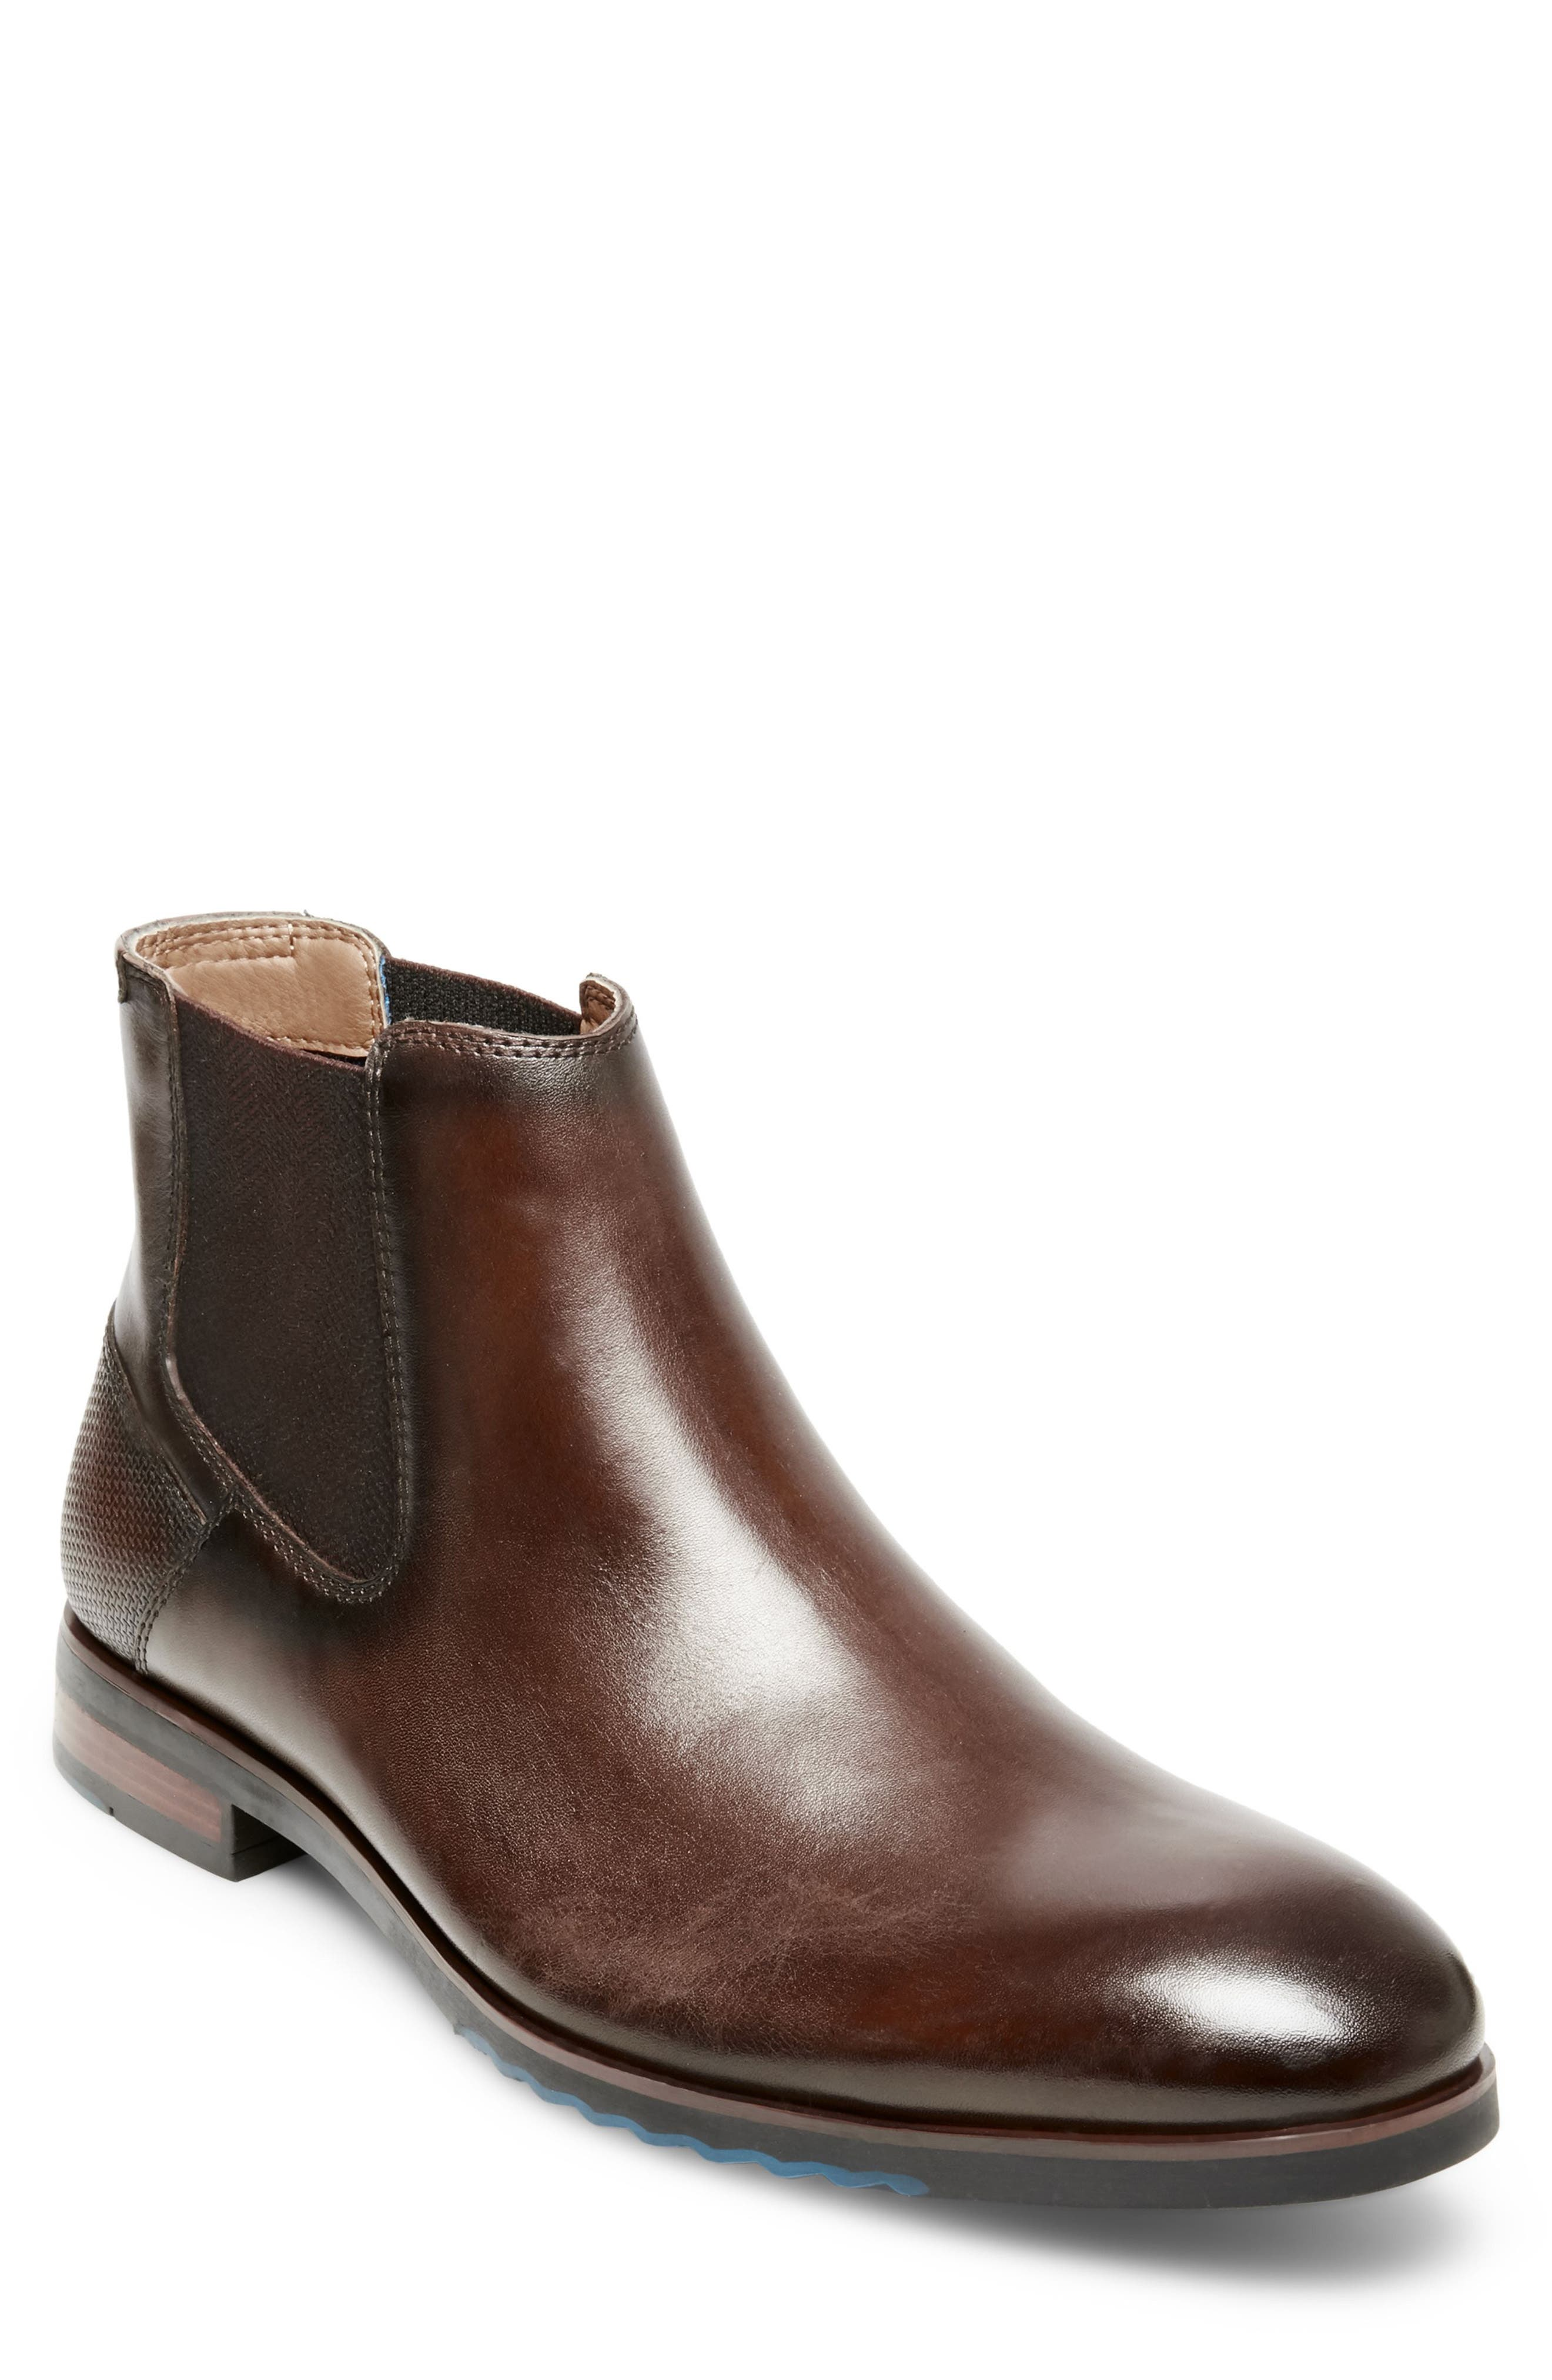 Leston Chelsea Boot,                             Main thumbnail 1, color,                             BROWN LEATHER